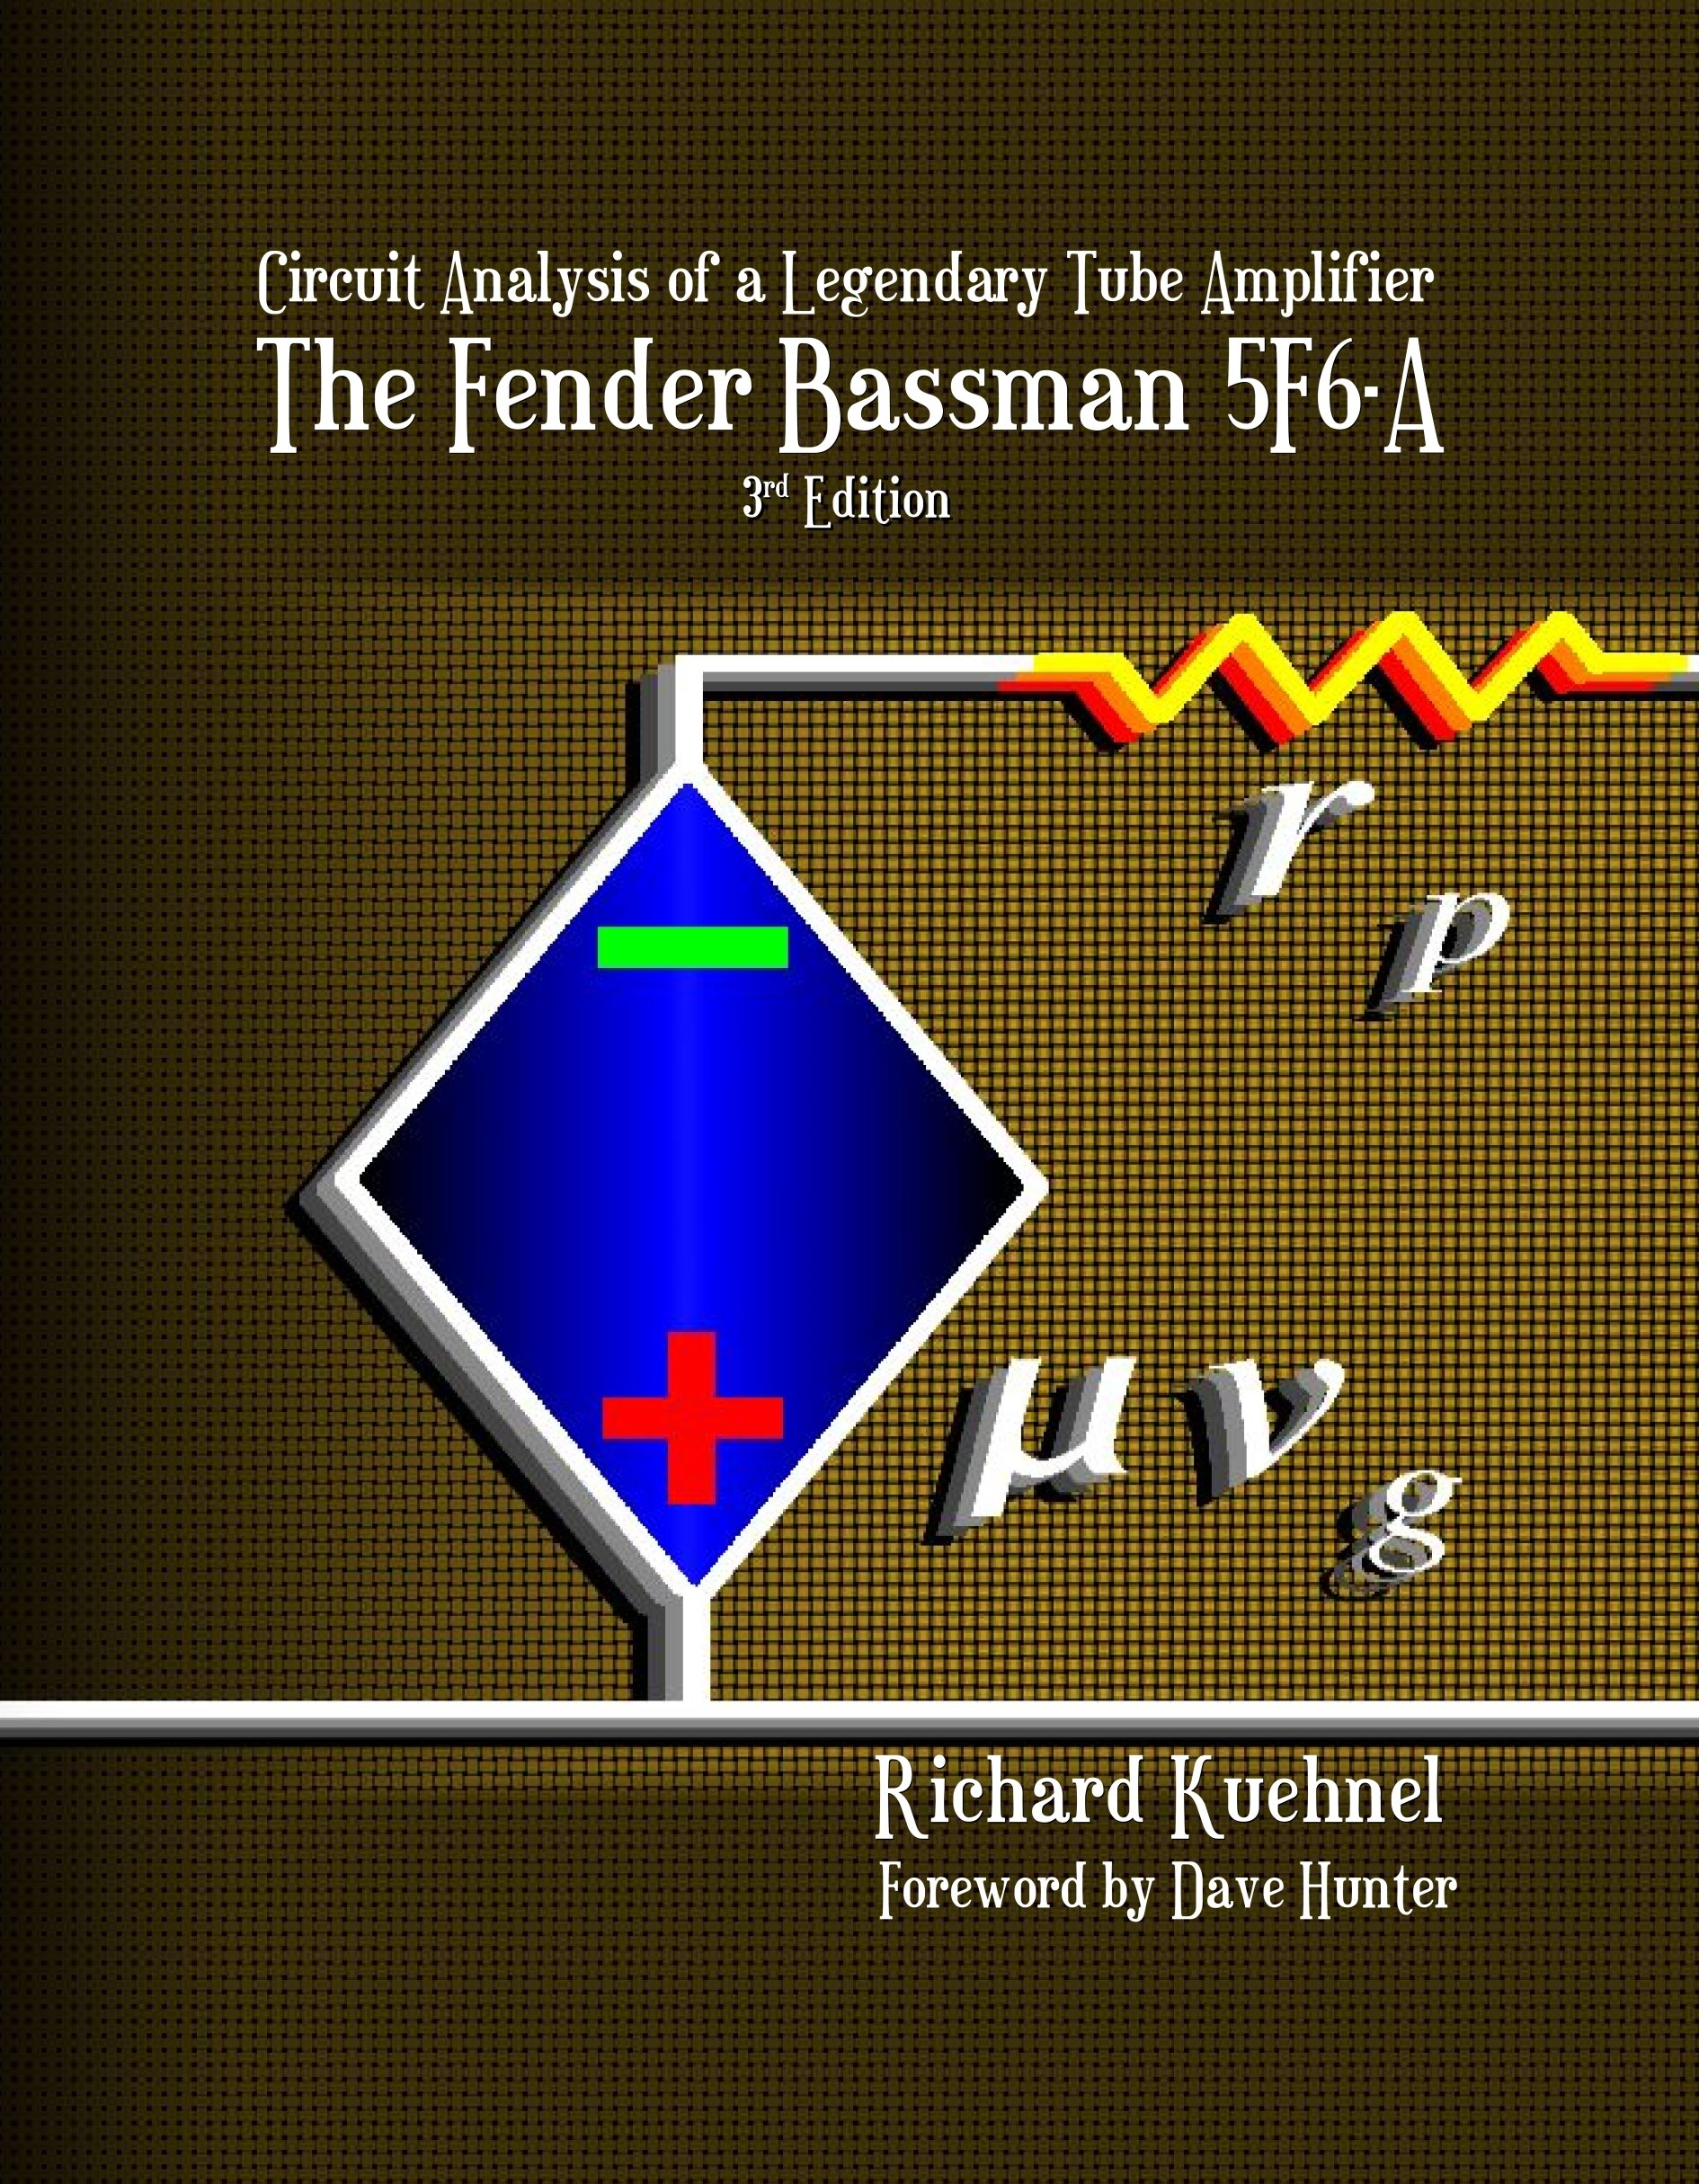 Circuit Analysis Of A Legendary Tube Amplifier The Fender Bassman Ferrari Wiring Diagram Free Download Schematic 5f6 Third Edition Richard Kuehnel 9780976982258 Books